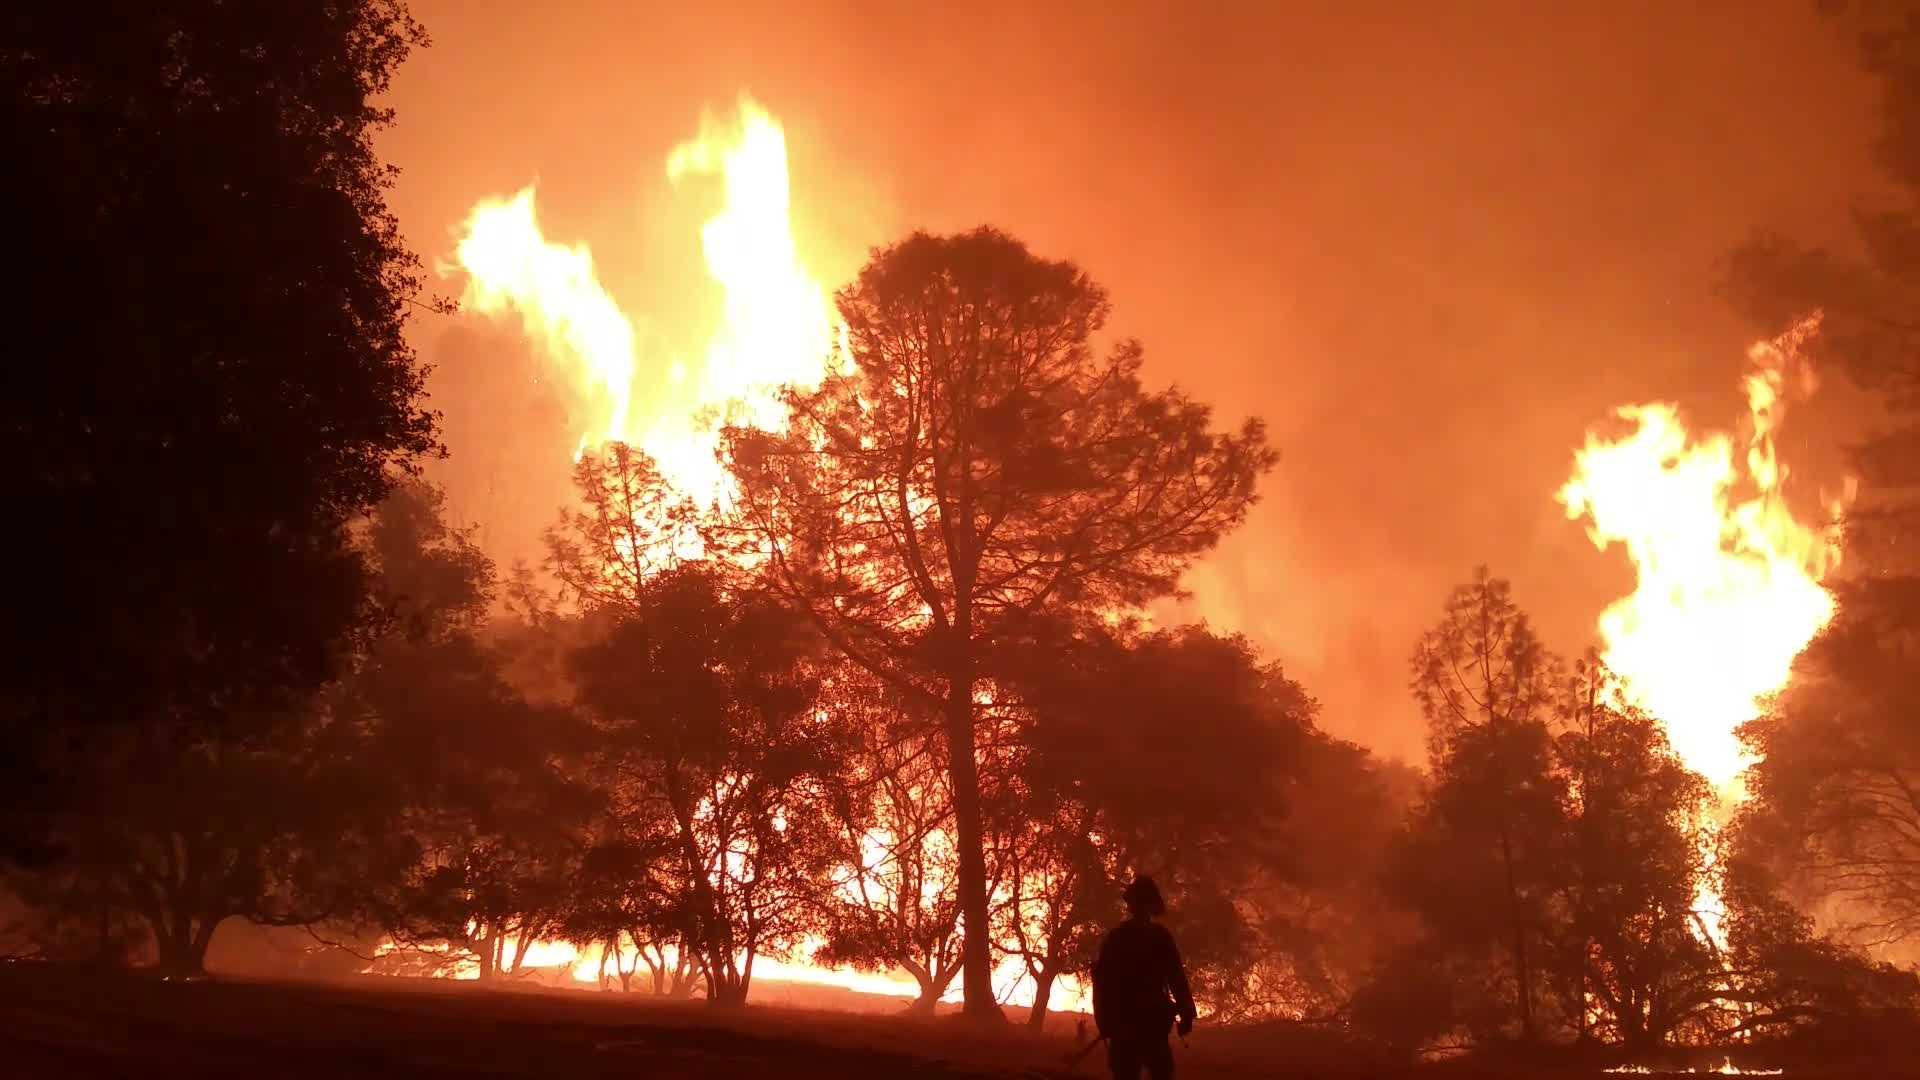 A Sac Metro fire captain helping to battle the Butte Fire shot this intense video as the fire front came through  Butte Mountain Road in Amador County.